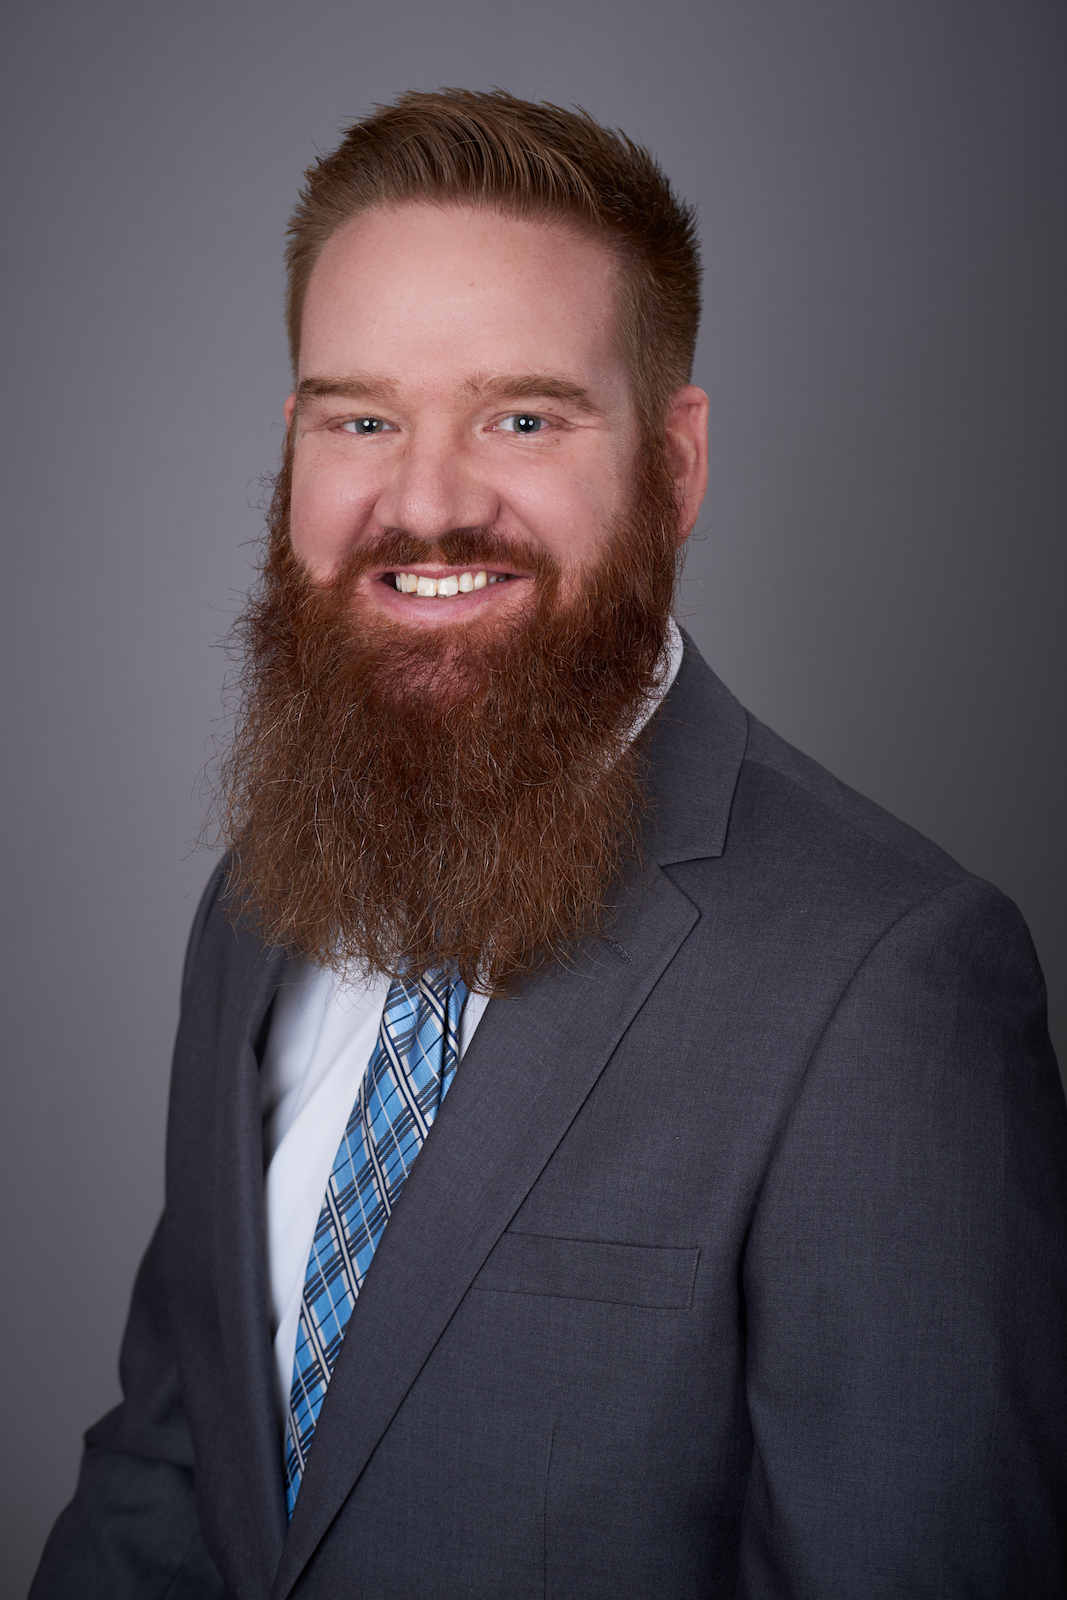 Latest Head Shot update for Liberty Mutual Insurance in Knoxville, TN